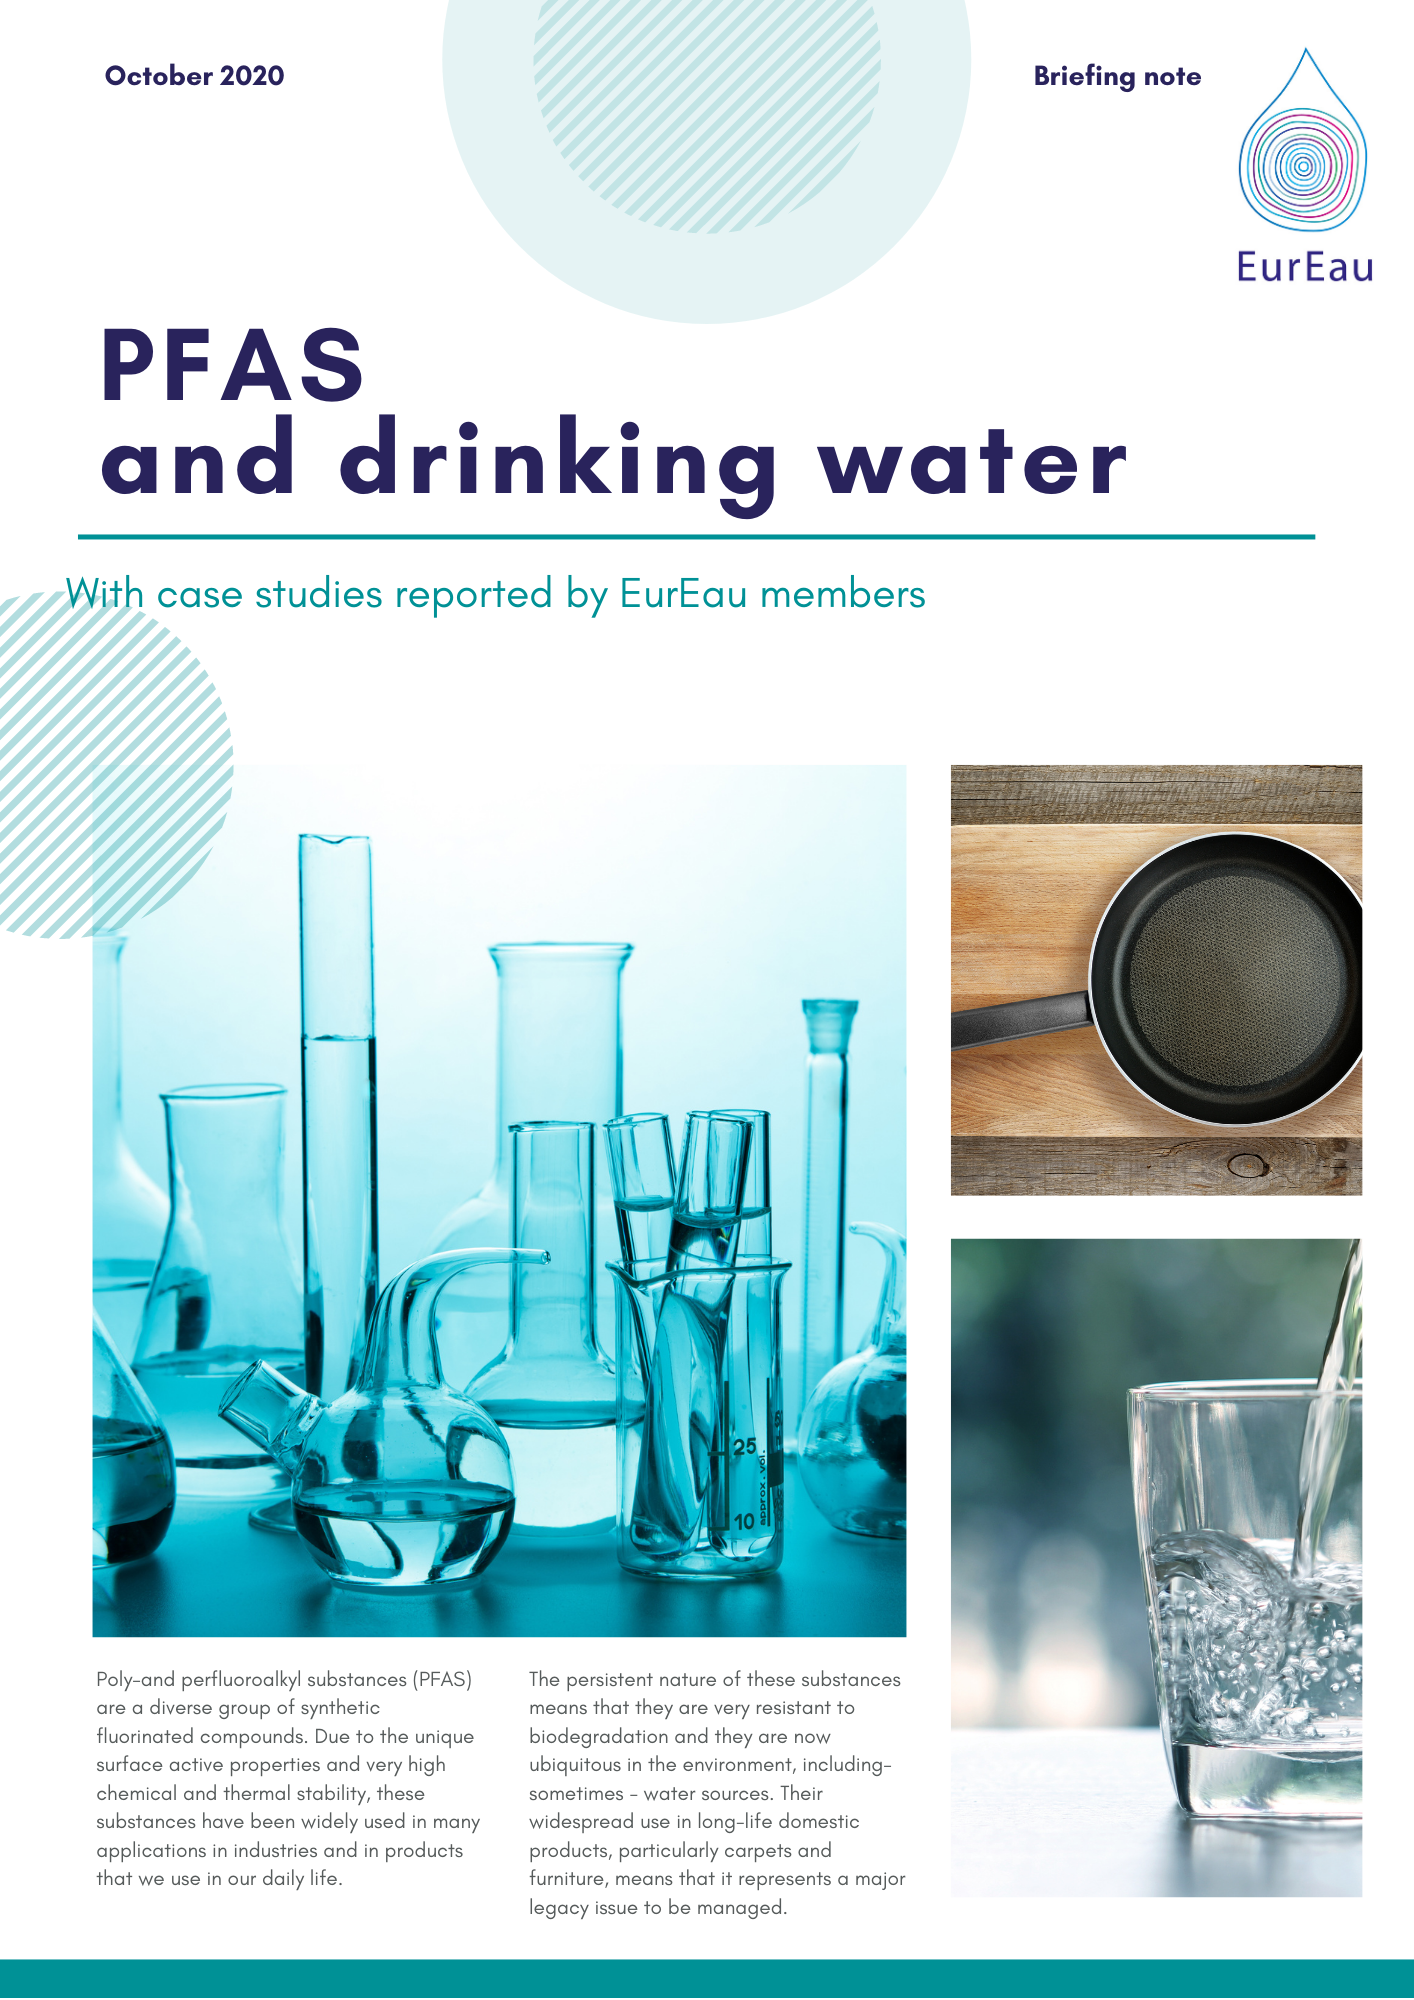 Briefing note on PFAS and drinking water